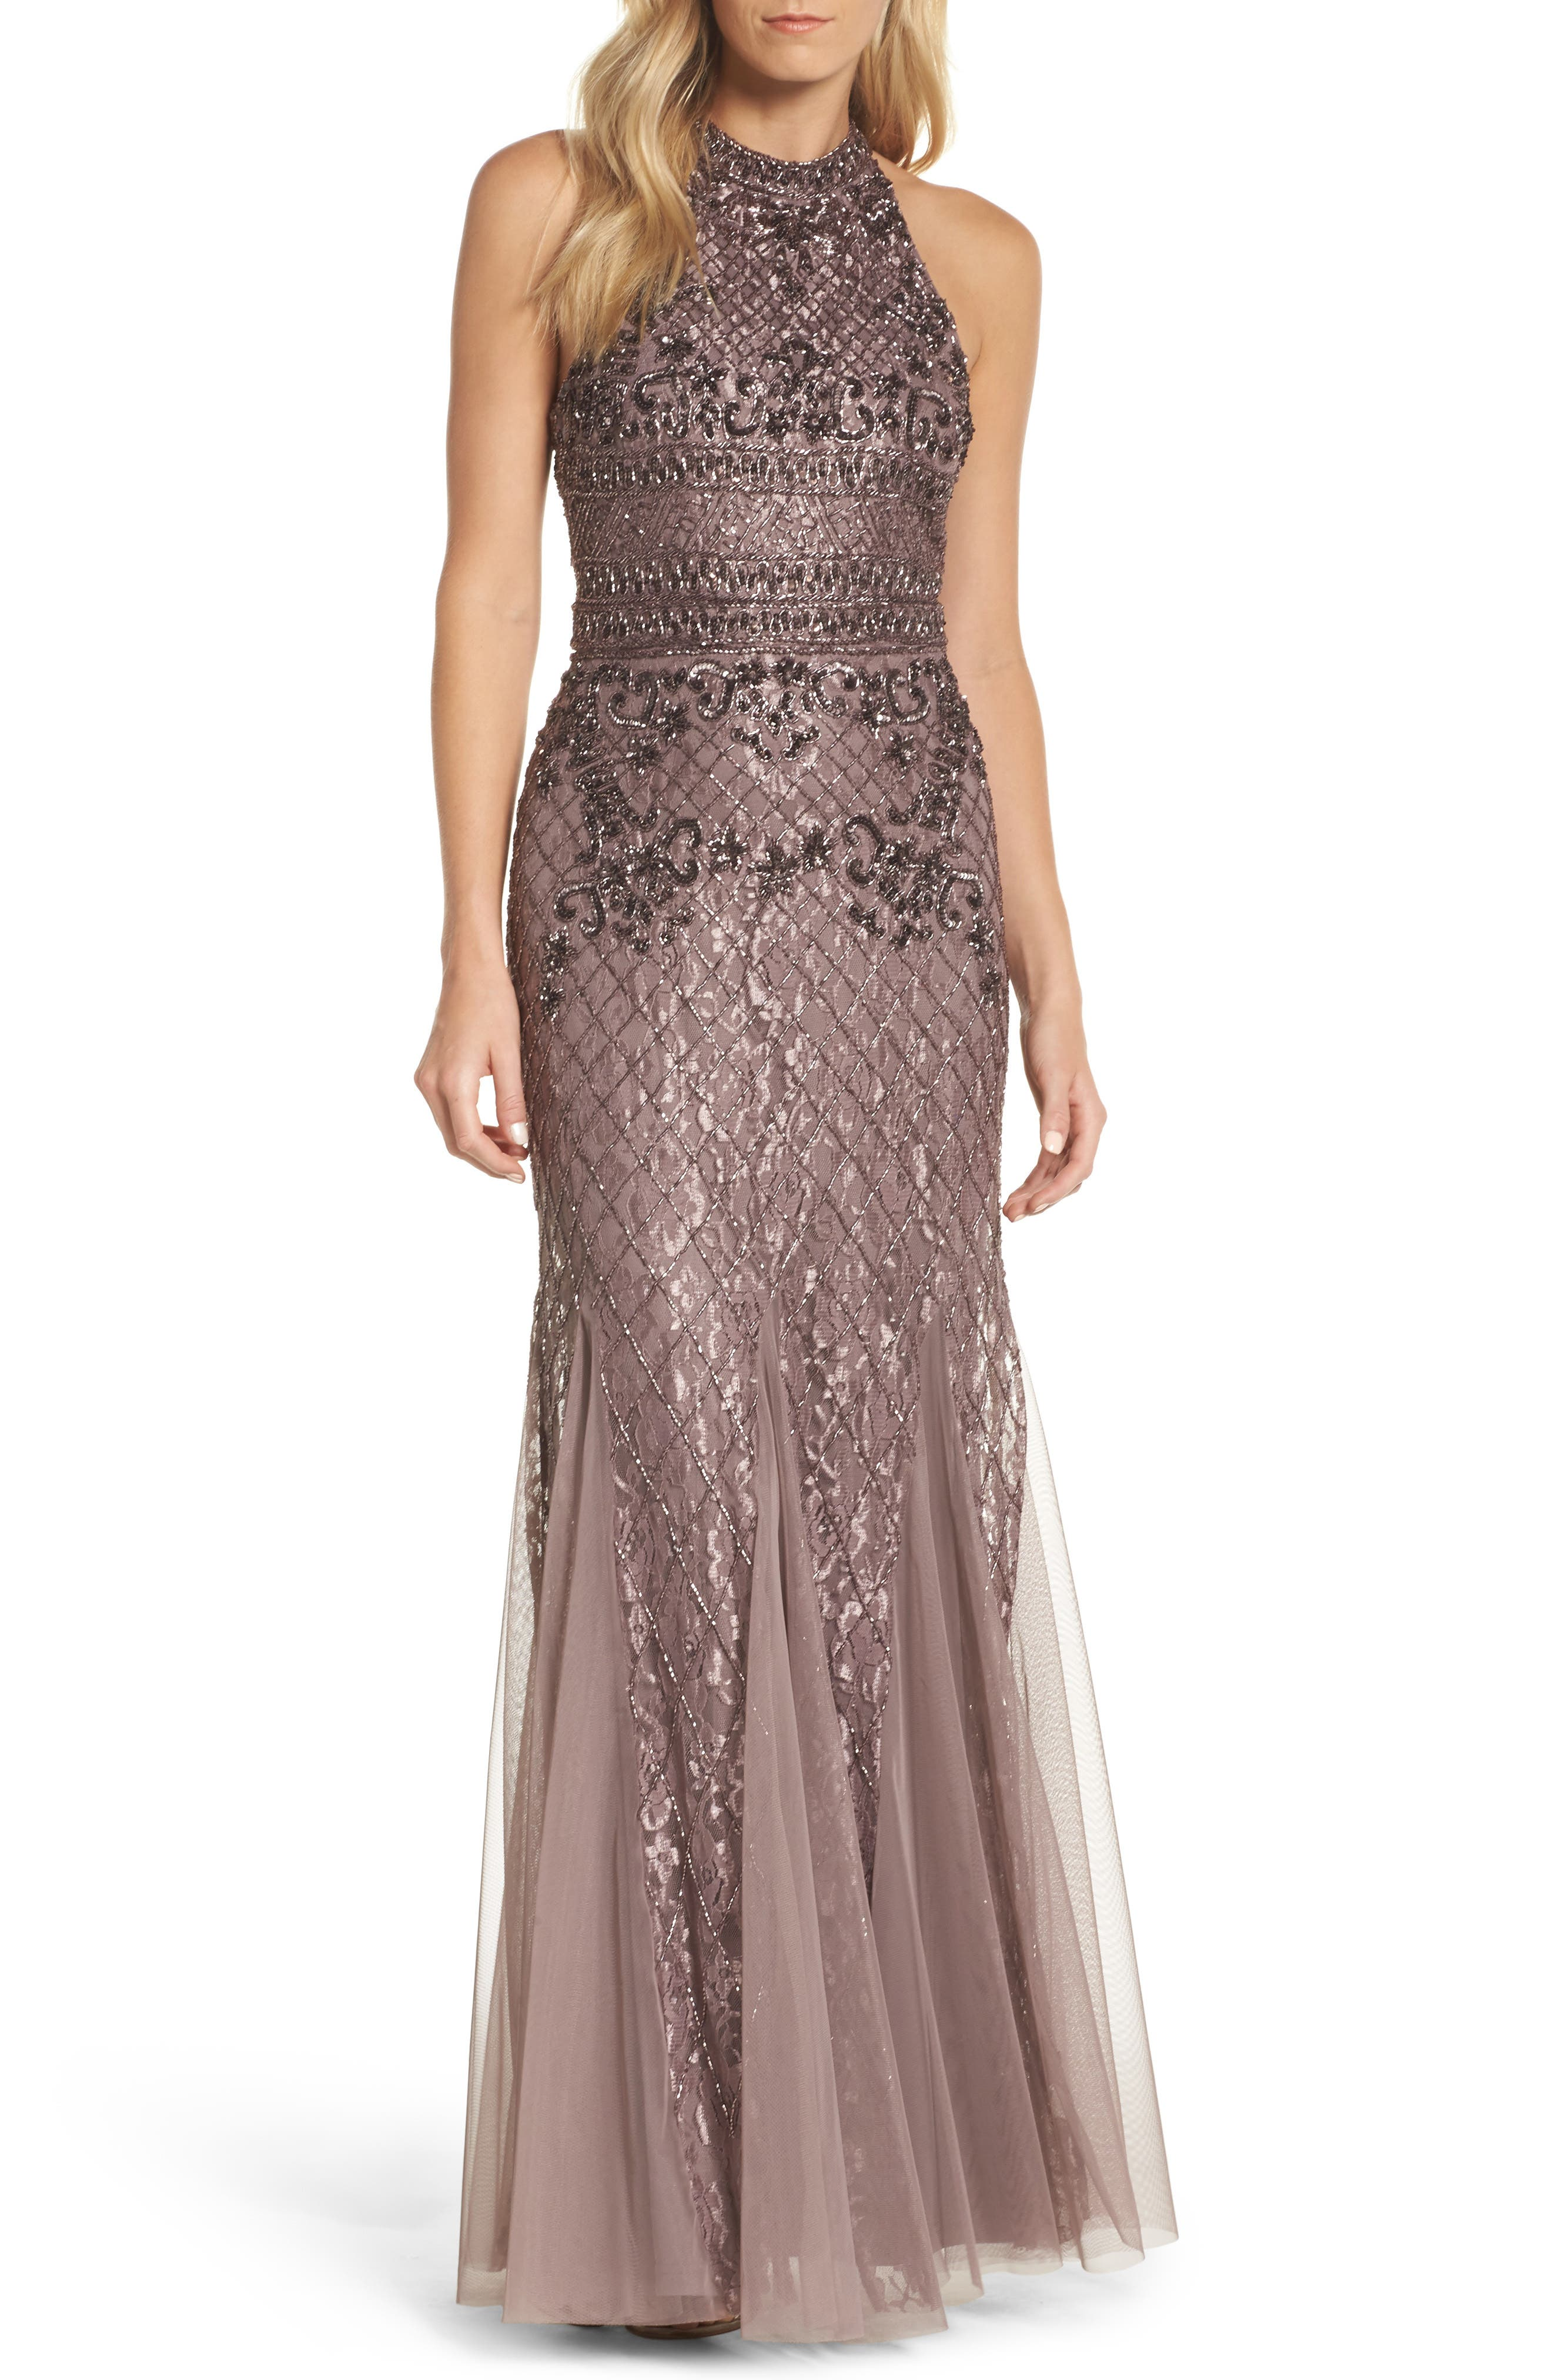 Alternate Image 1 Selected - Adrianna Papell Bead Embellished Gown